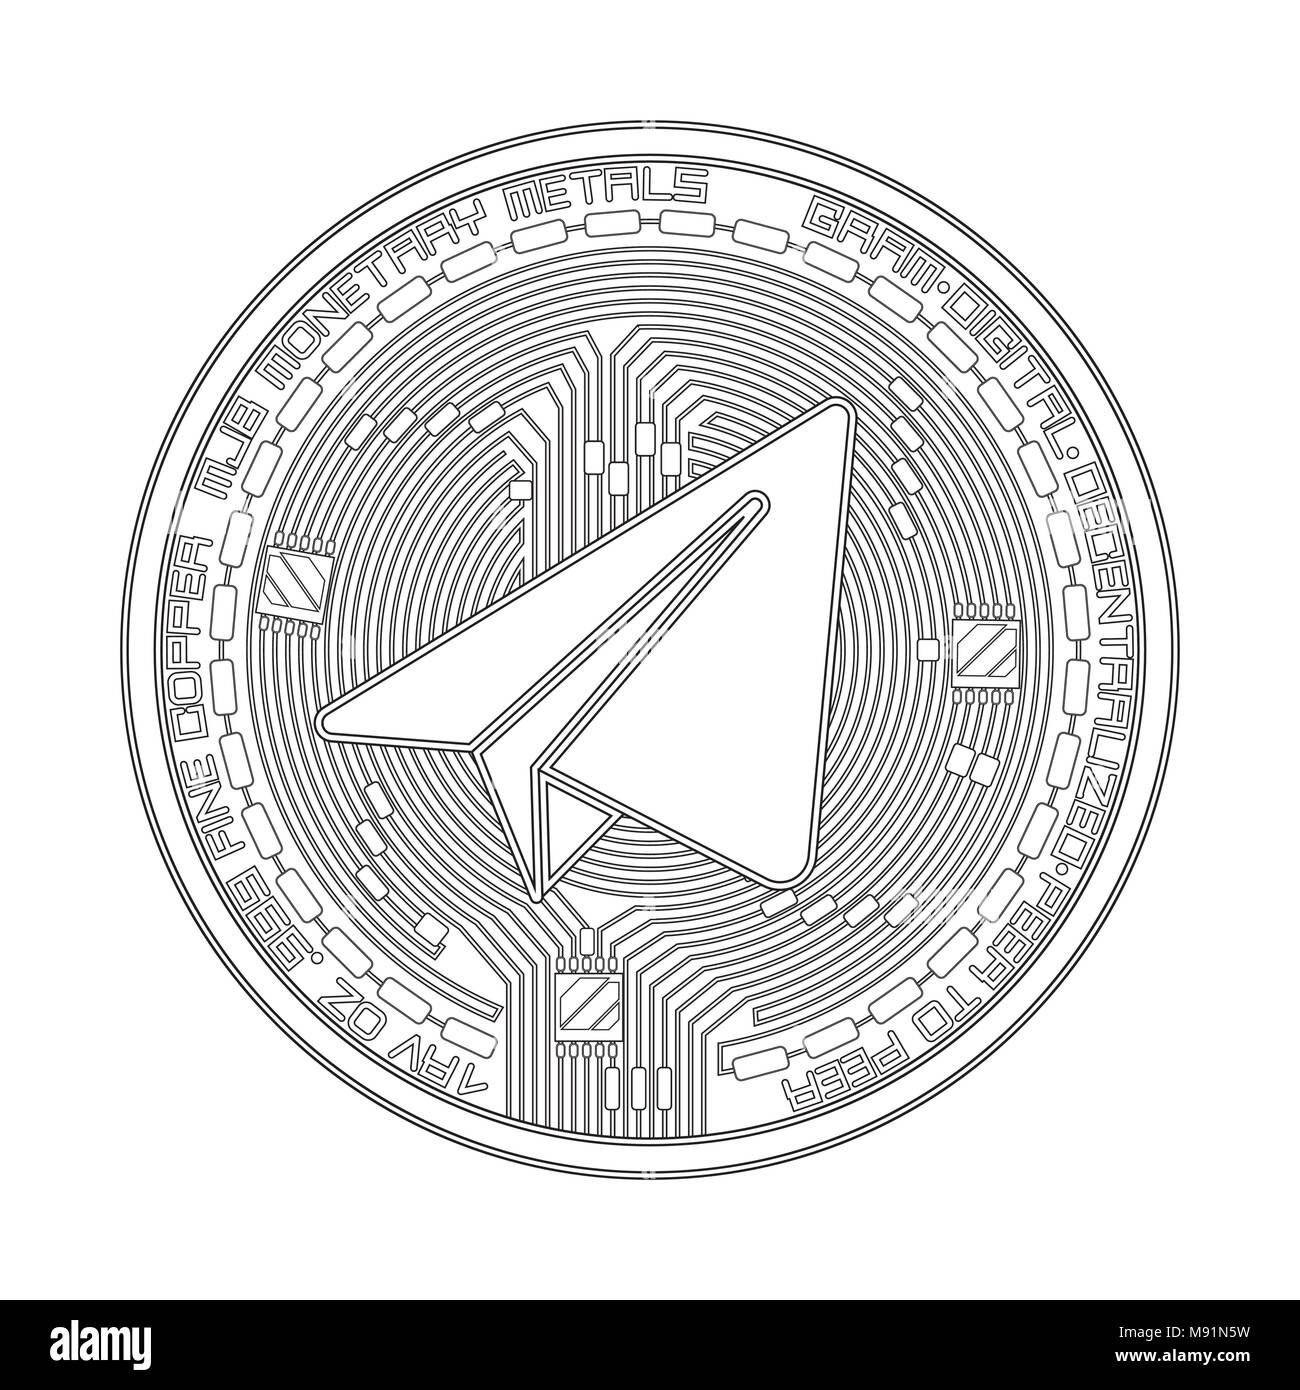 Crypto currency black coin with black gram symbol on obverse